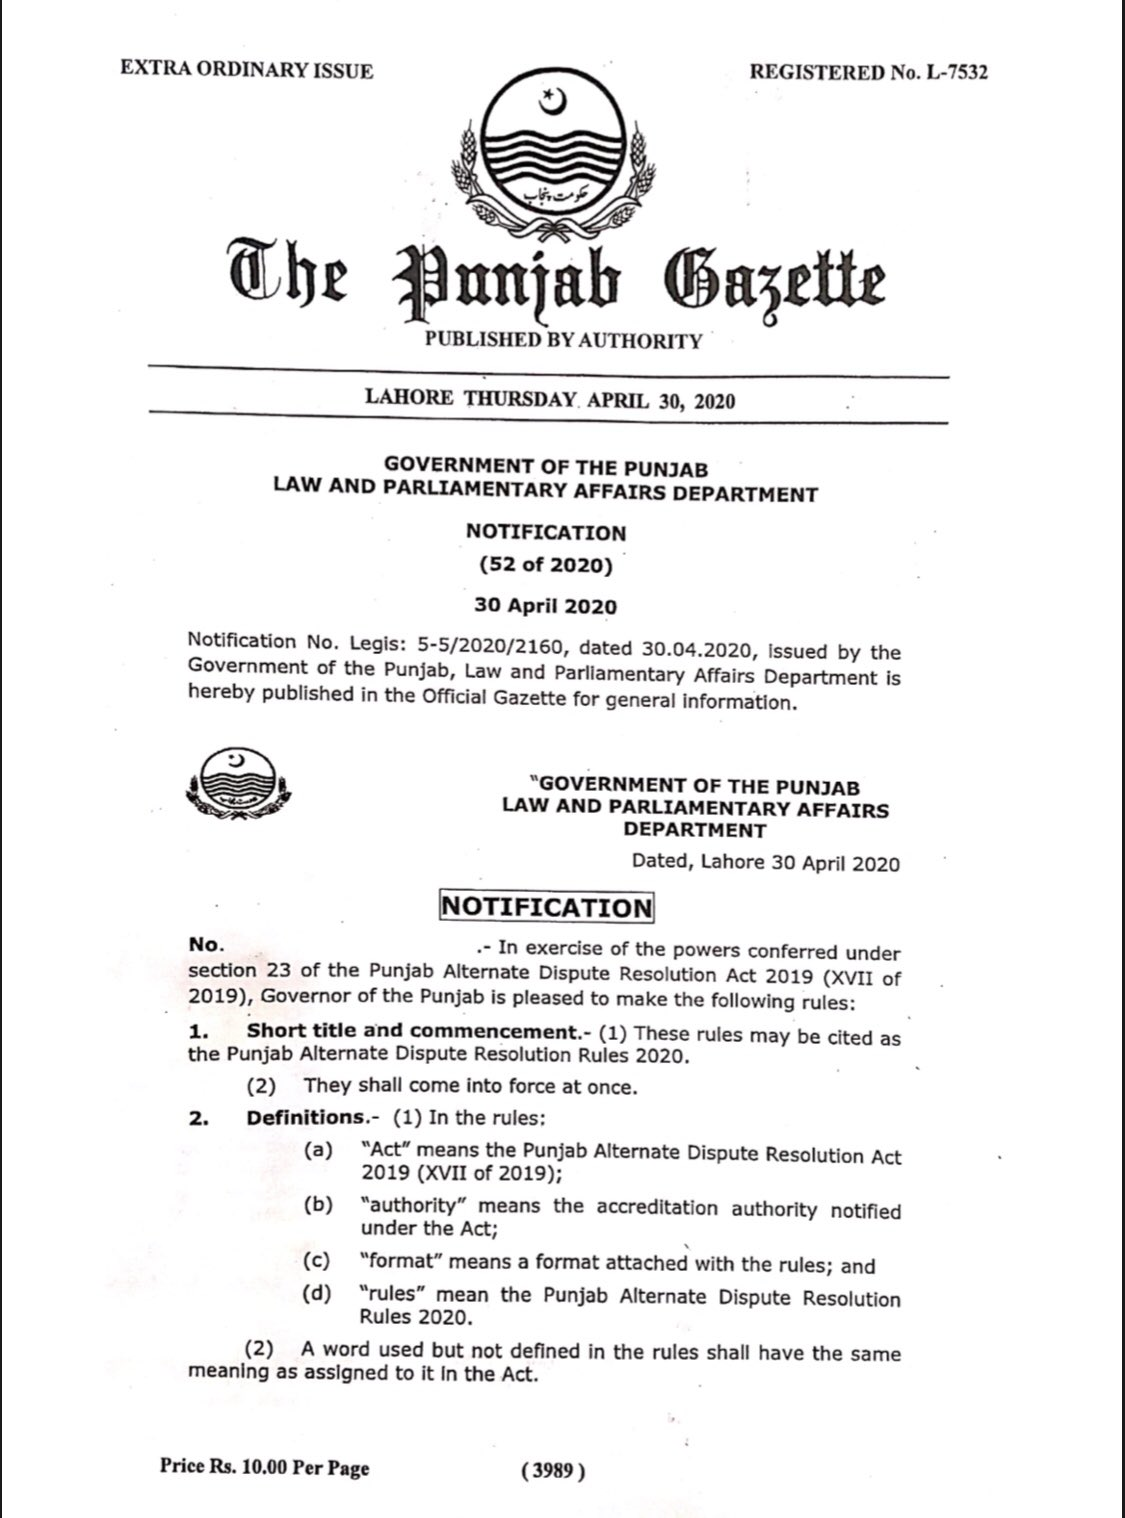 Govt has approved Alternate Dispute Resolution Rules 2020